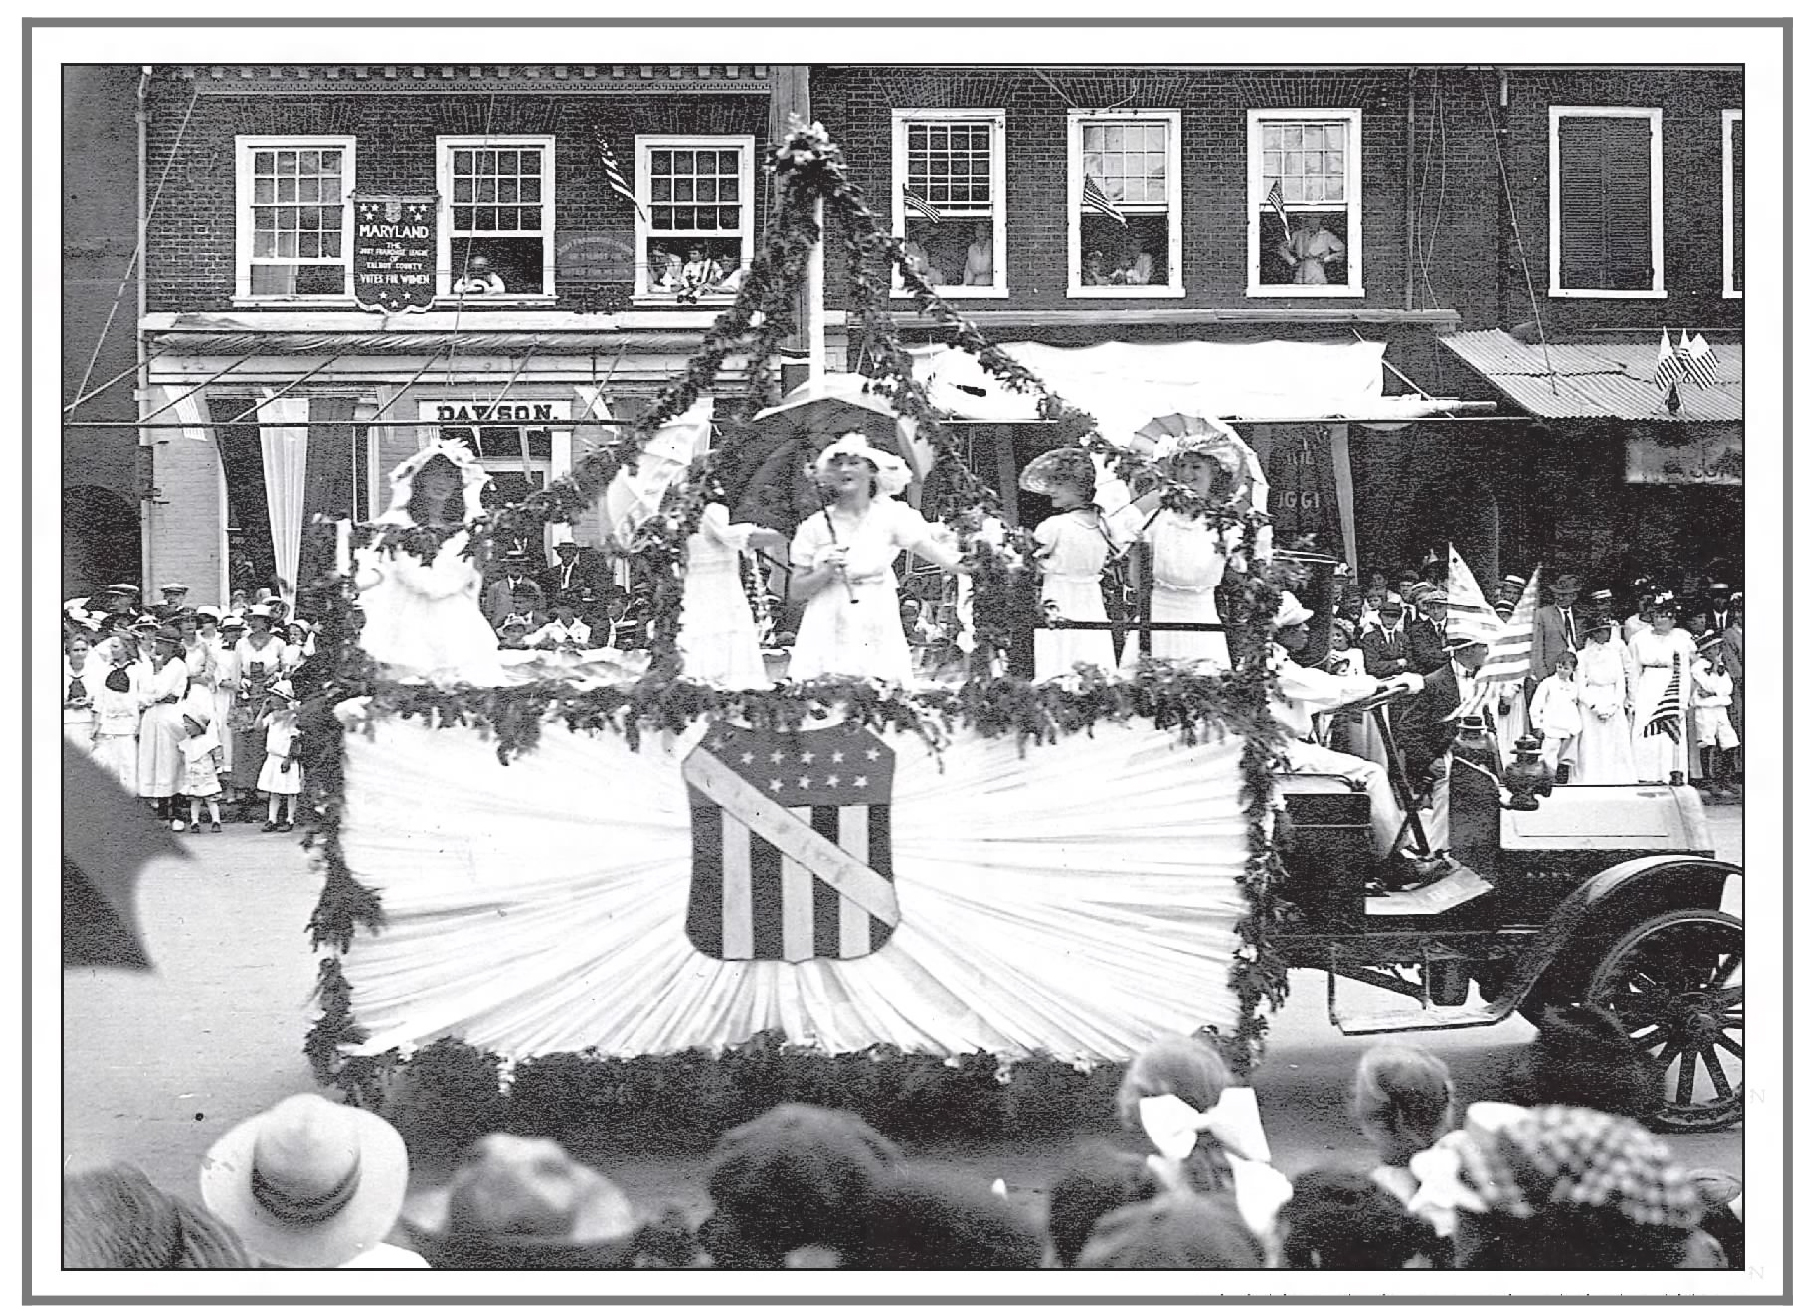 Mary_Bartlett_Dixon_float - Newspapers.com